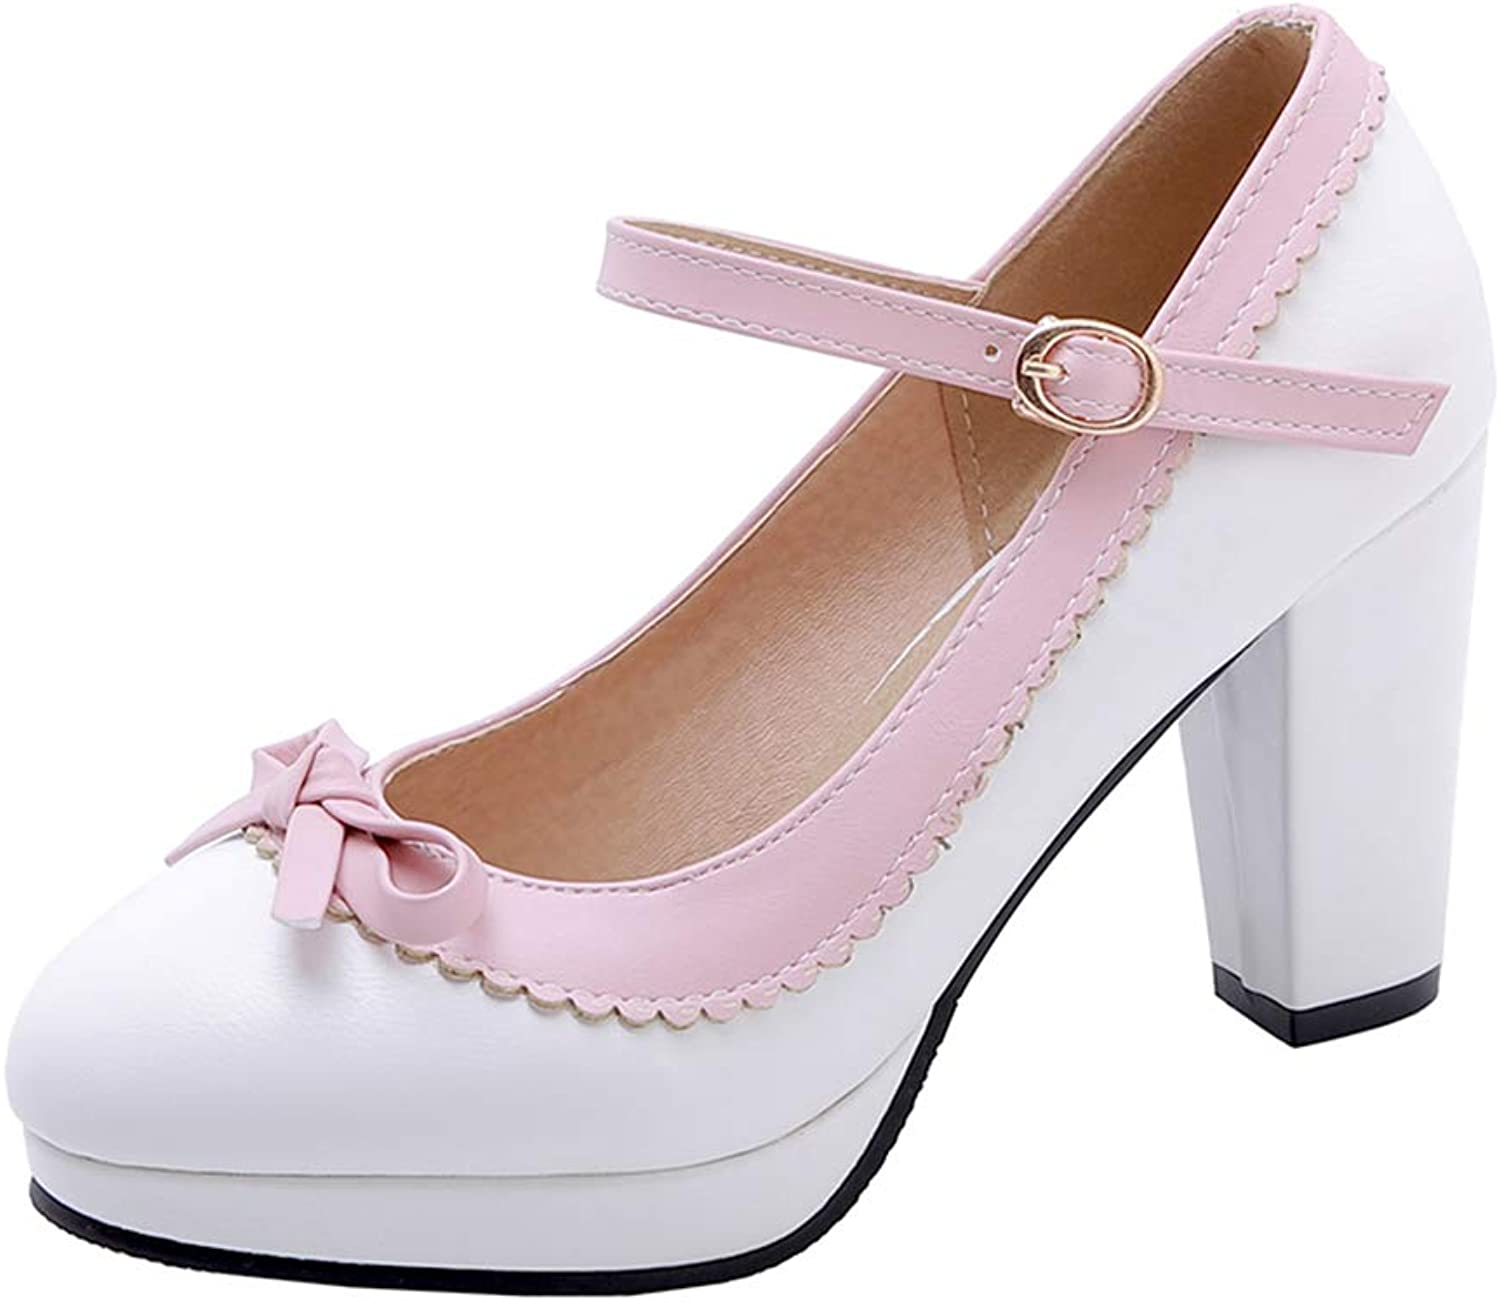 XDLEX Women's Lolita Sweet Lace Bowtie Pumps Platform Ankle Strap Wedge Vintage Perforated Mary Janes Cute Leather Gothic Court shoes High Chunky Block Heel